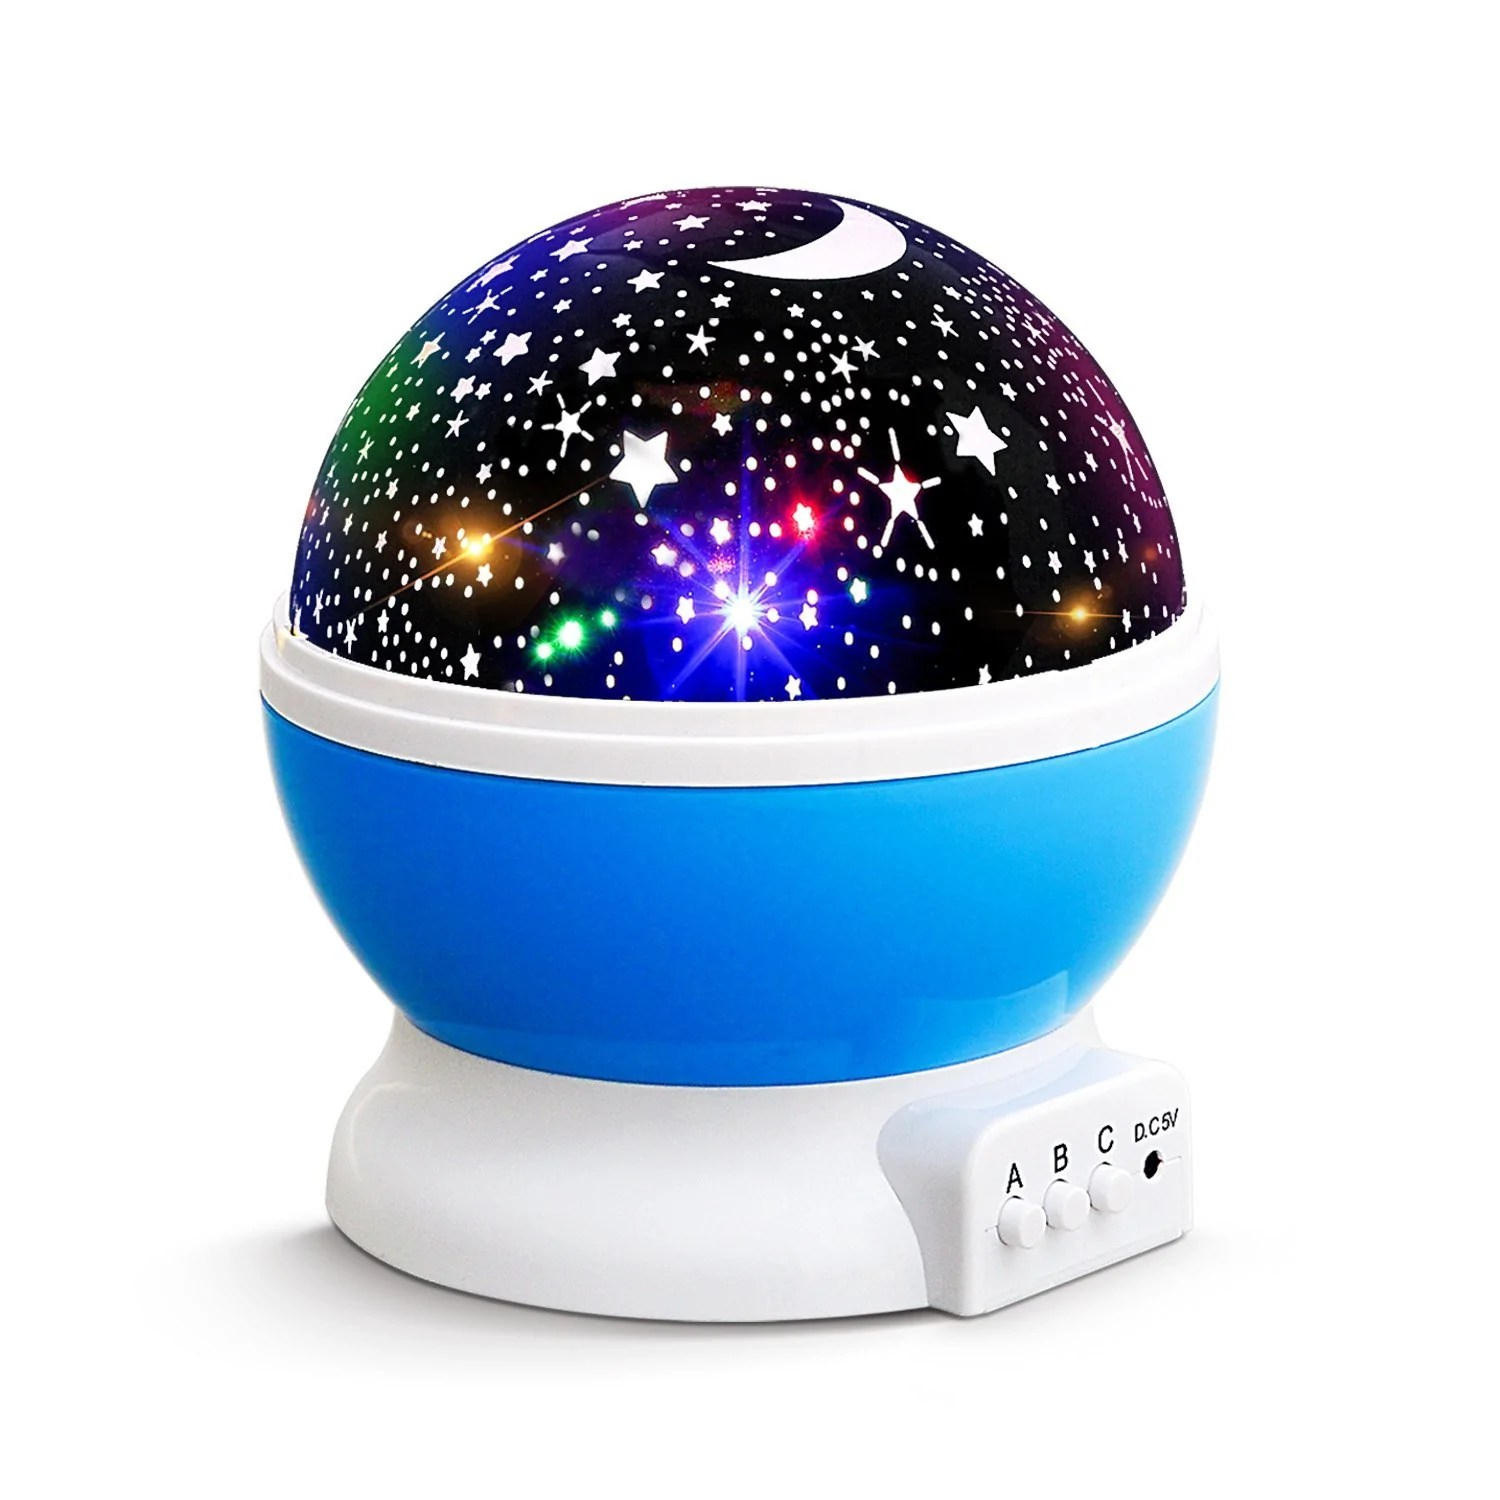 Light Projector New Generation Baby Night Lights For Kids Starry Night Light Rotating Moon Stars Projector 9 Color Options Romantic Night Lighting Lamp Usb Cable